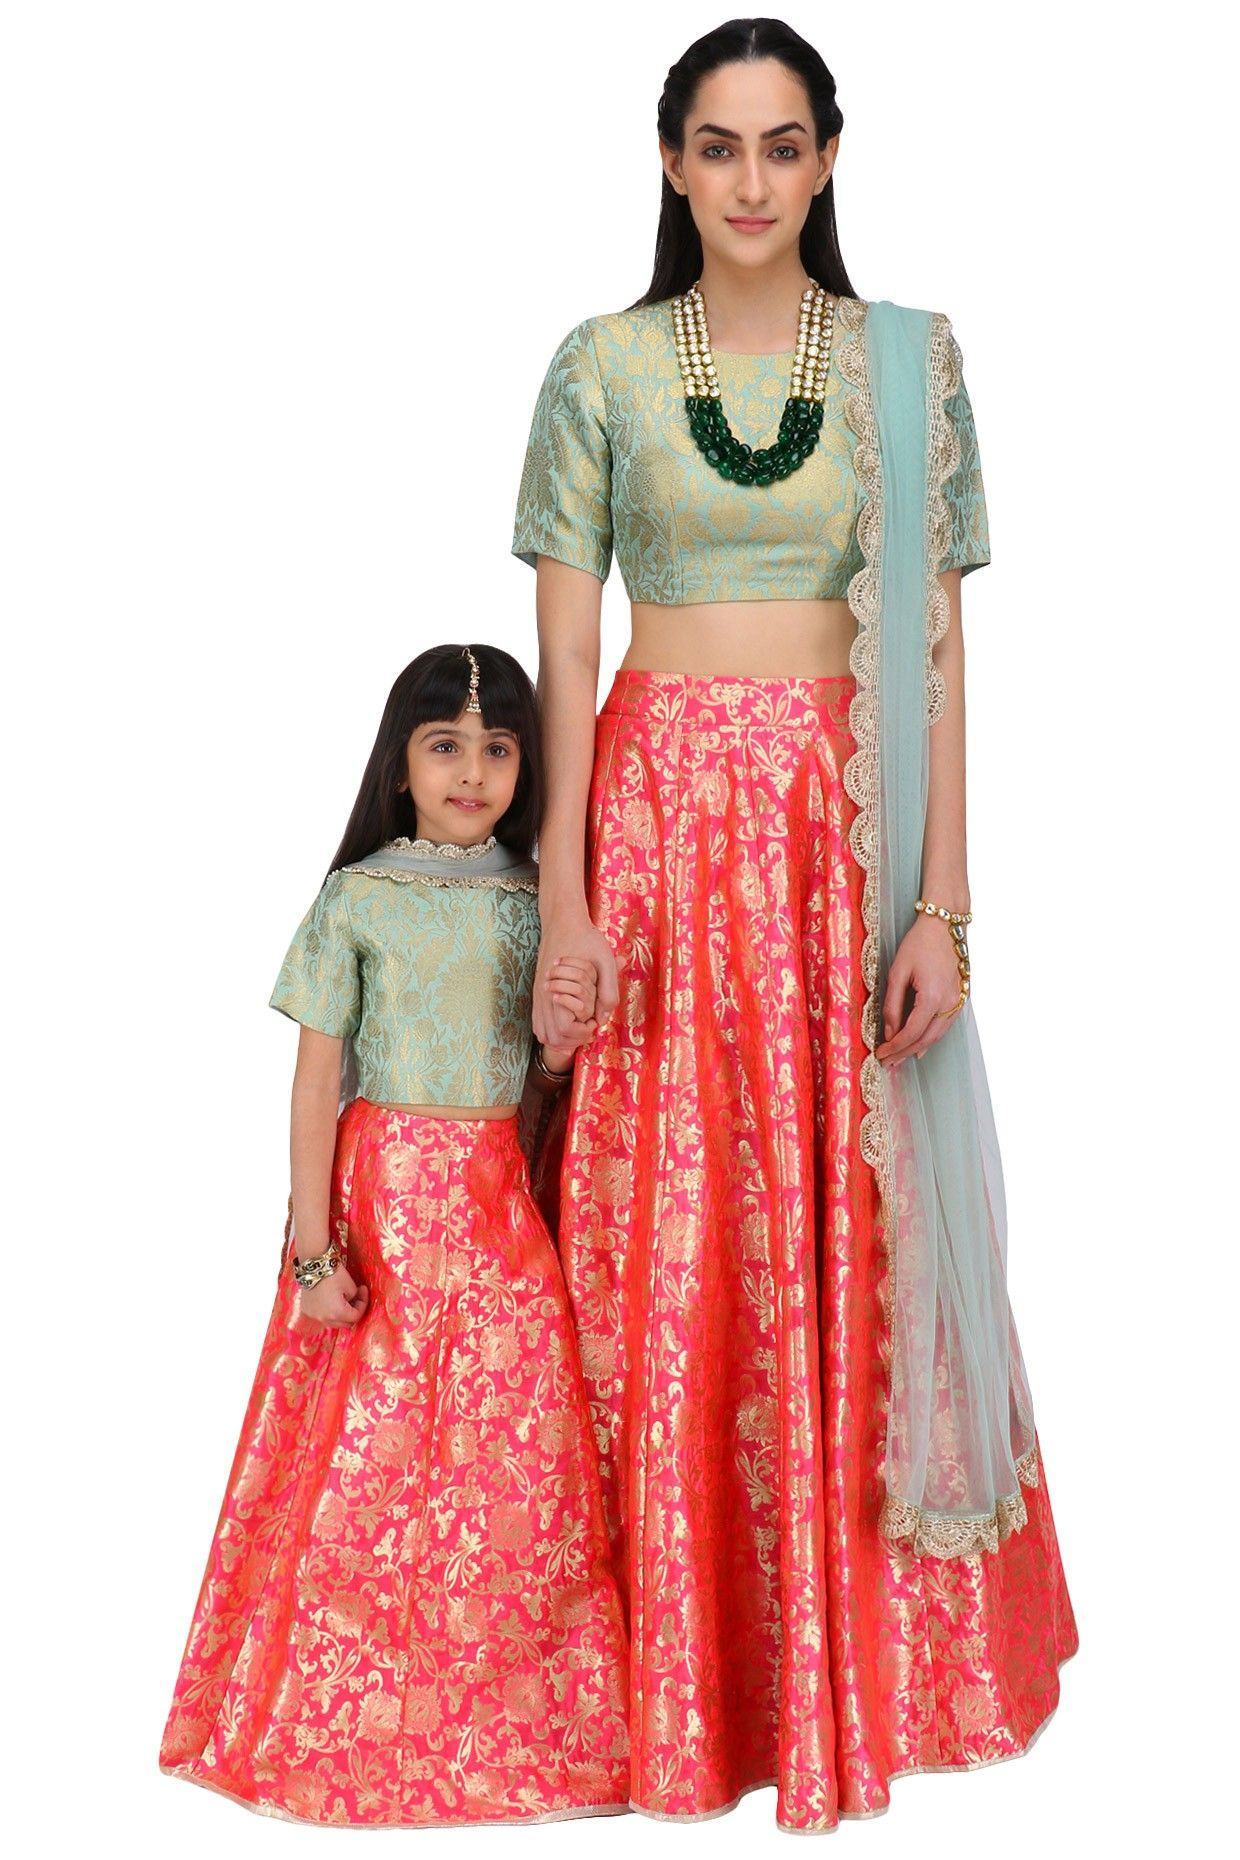 9 Cool Mother Daughter Matching Outfit Ideas Indian Makeup